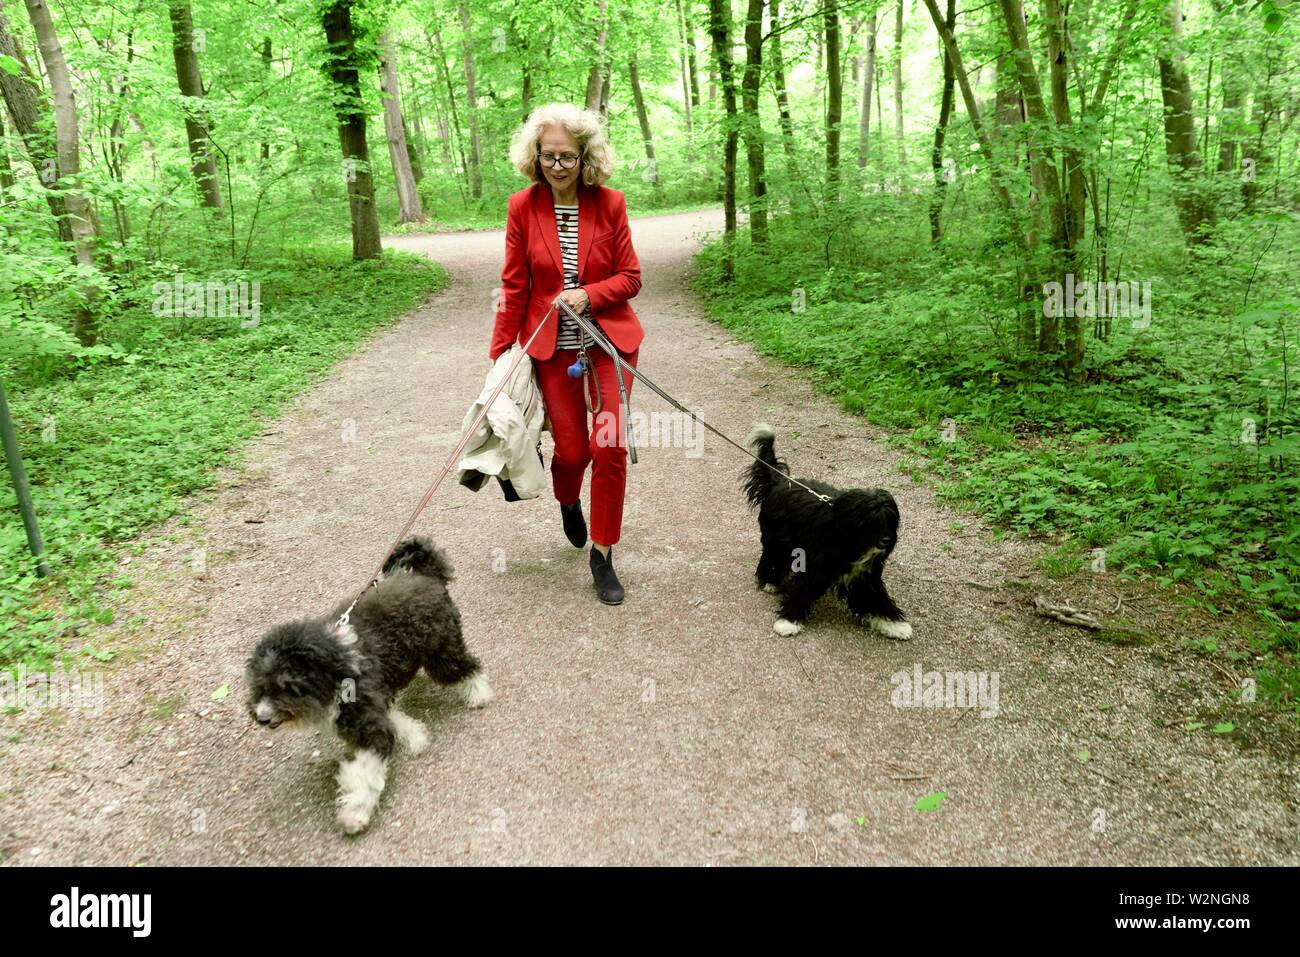 senior woman (67 years old) walking with two dogs on leash in forest, in Nymphenburg, Munich, Germany. - Stock Image